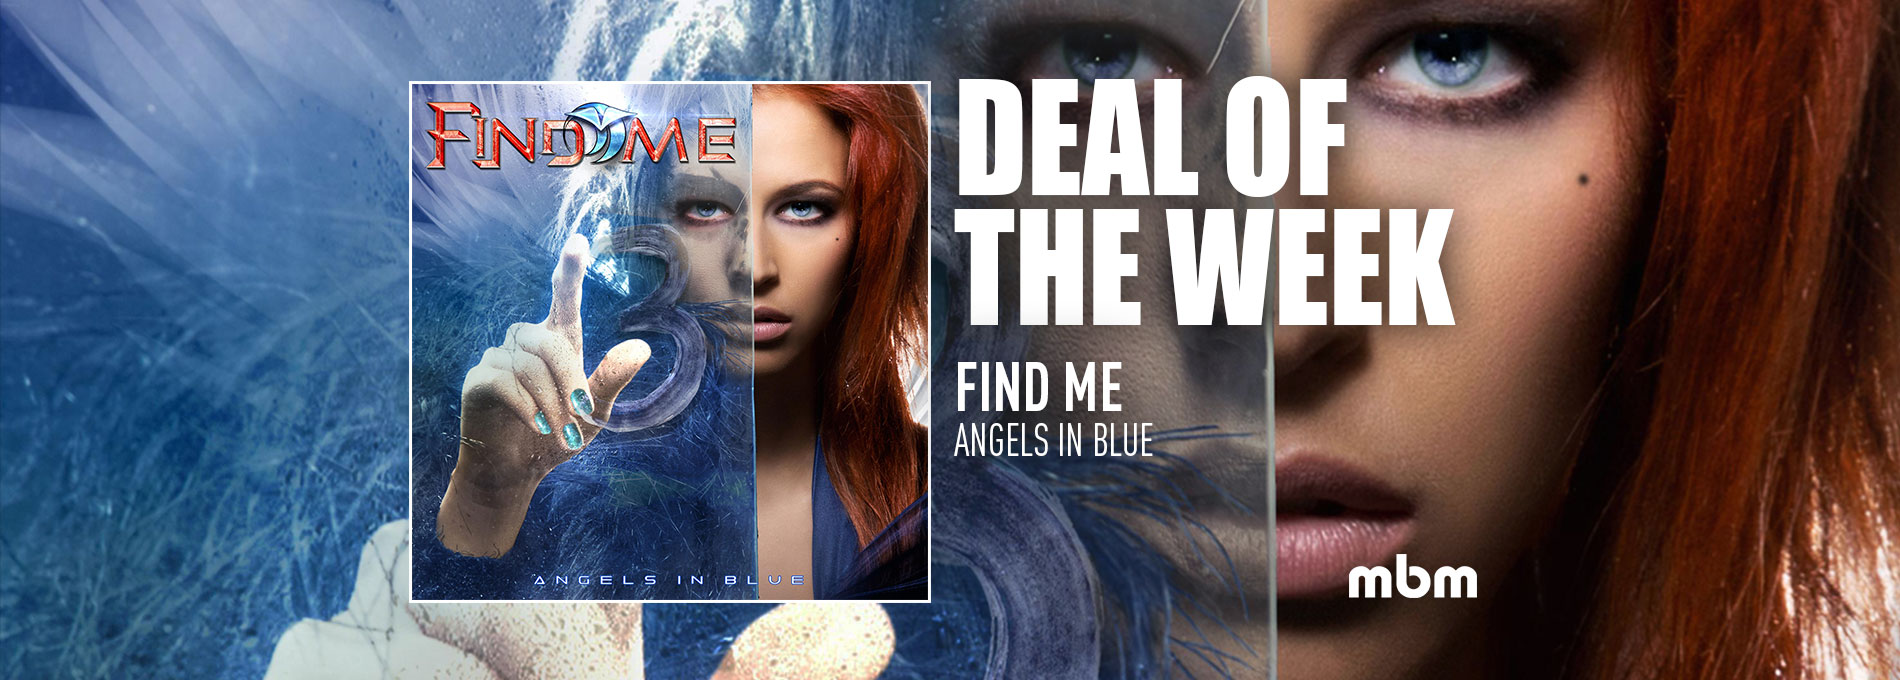 Deal Of The Week: FIND ME - Angels In Blue